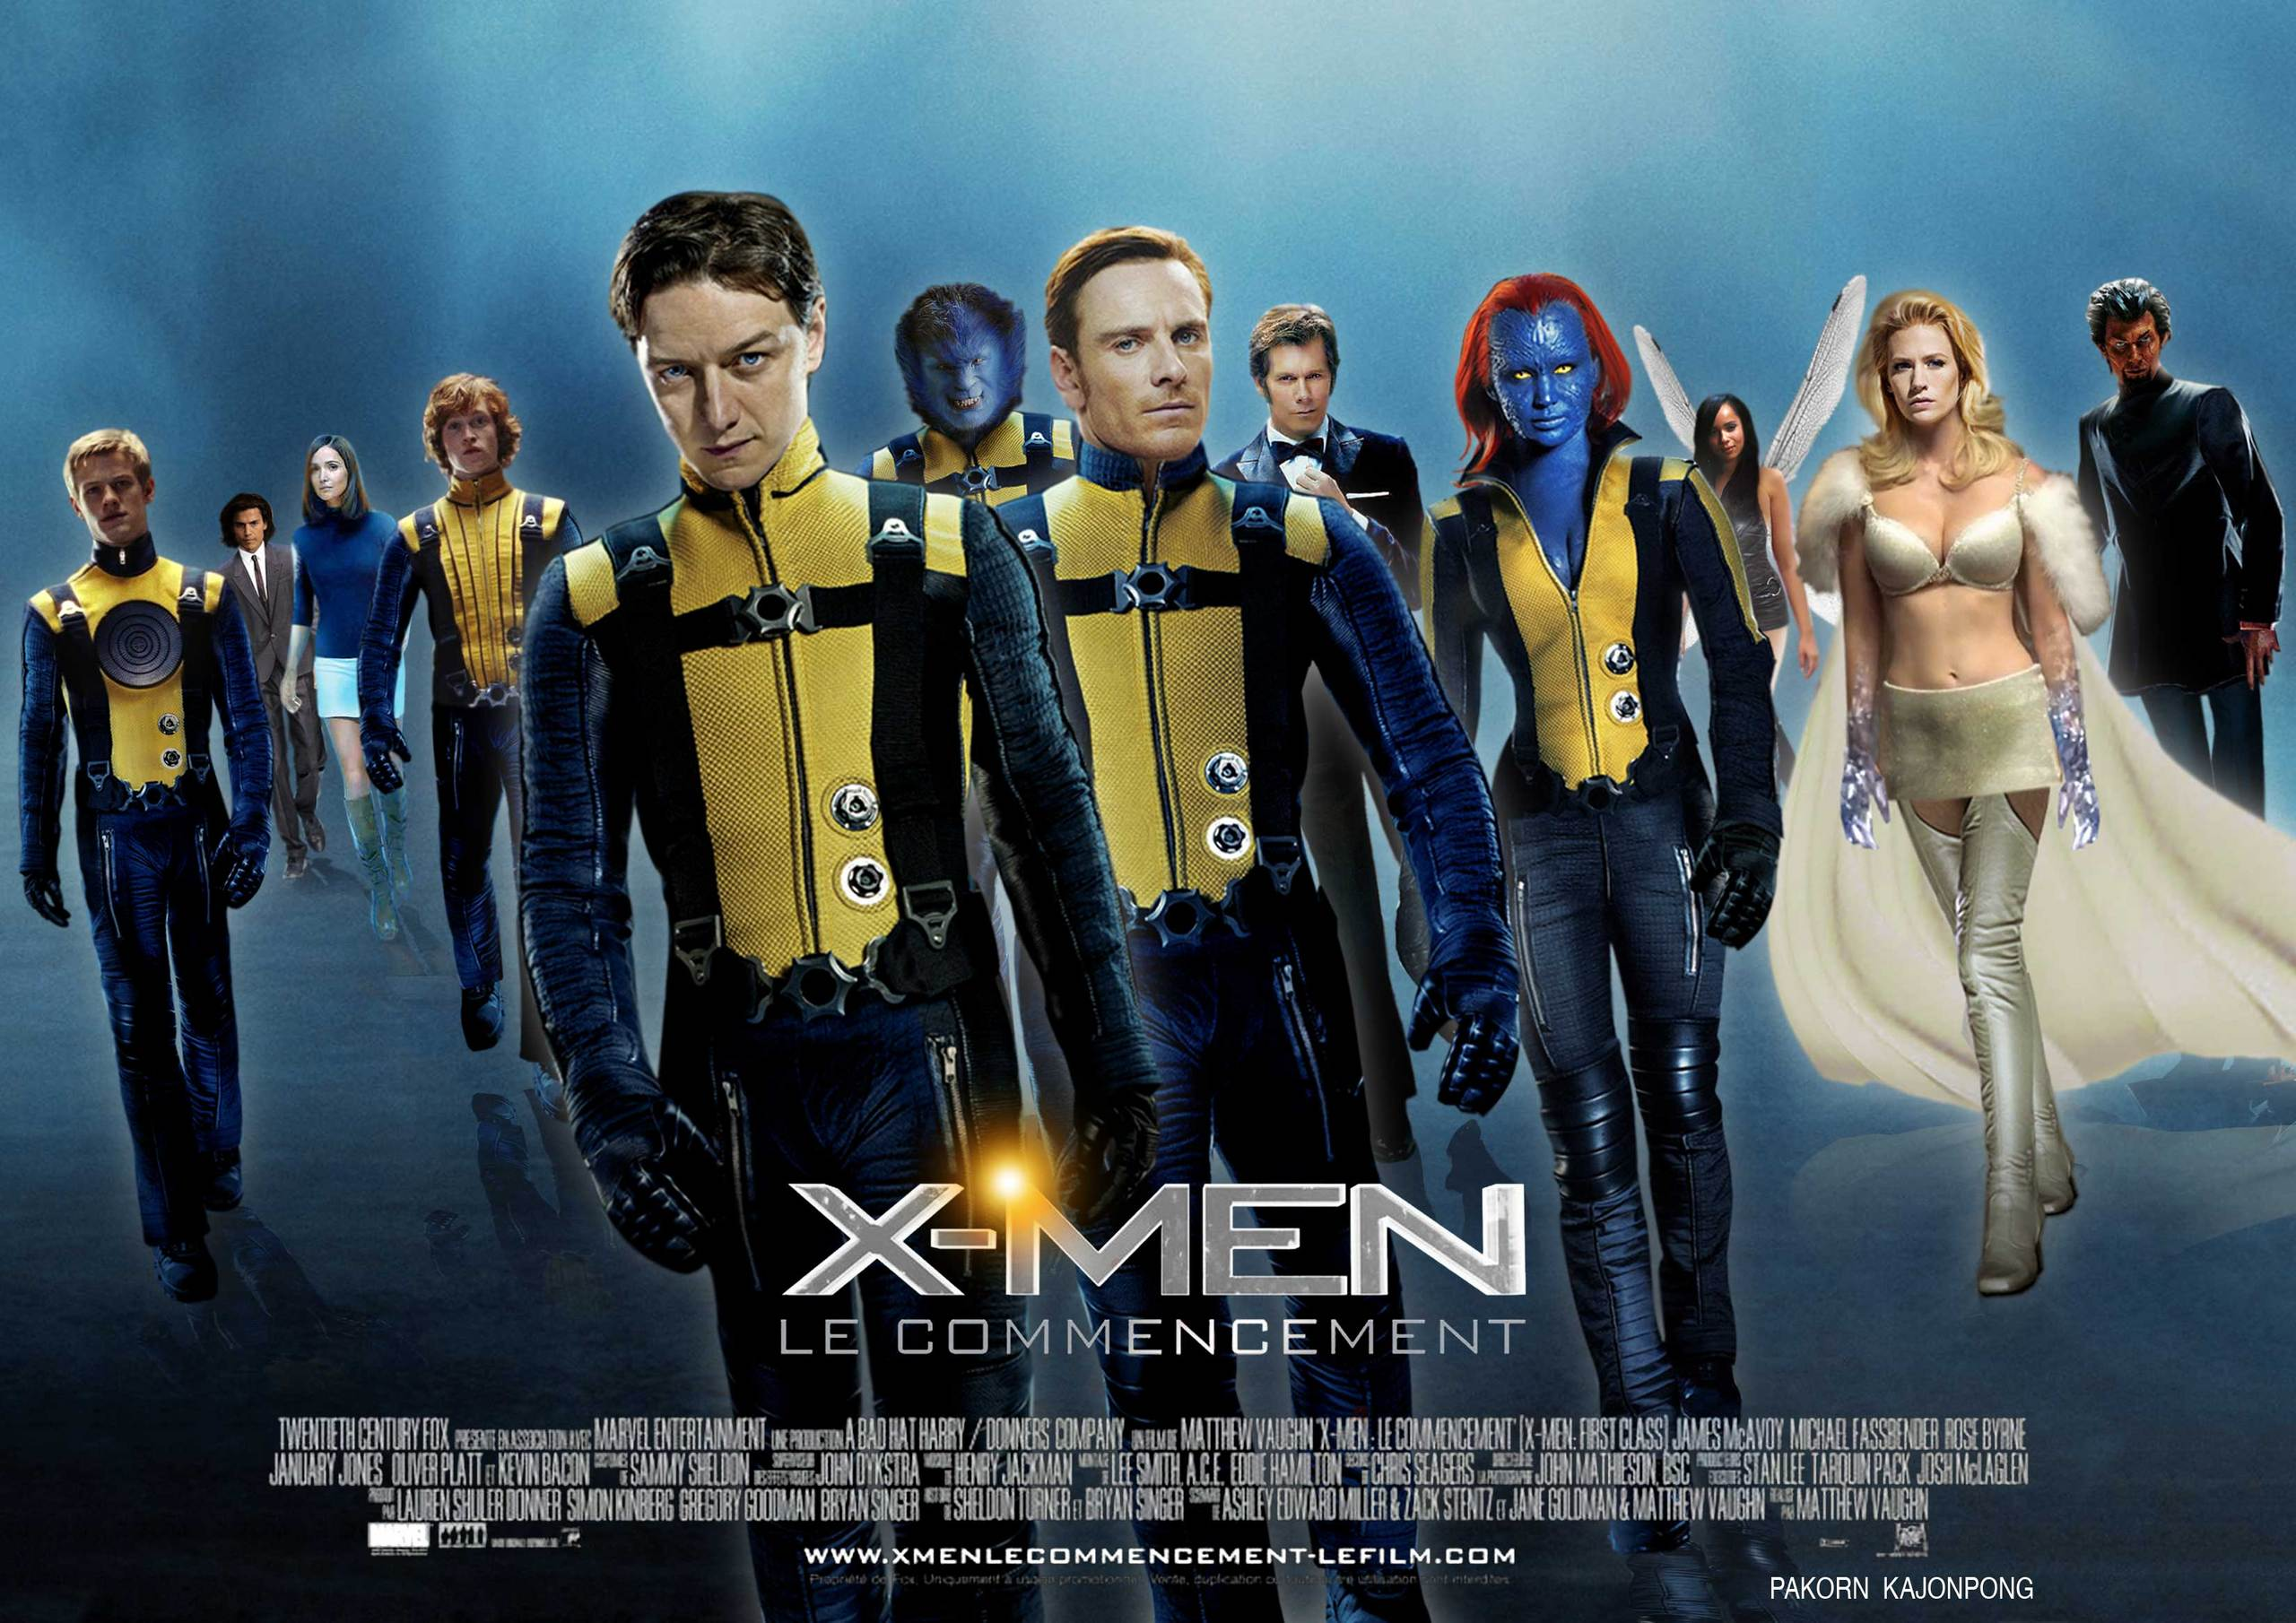 Pakorn-x-men-first-class-25197966-2560-1810.jpg X Men First Class Characters Names